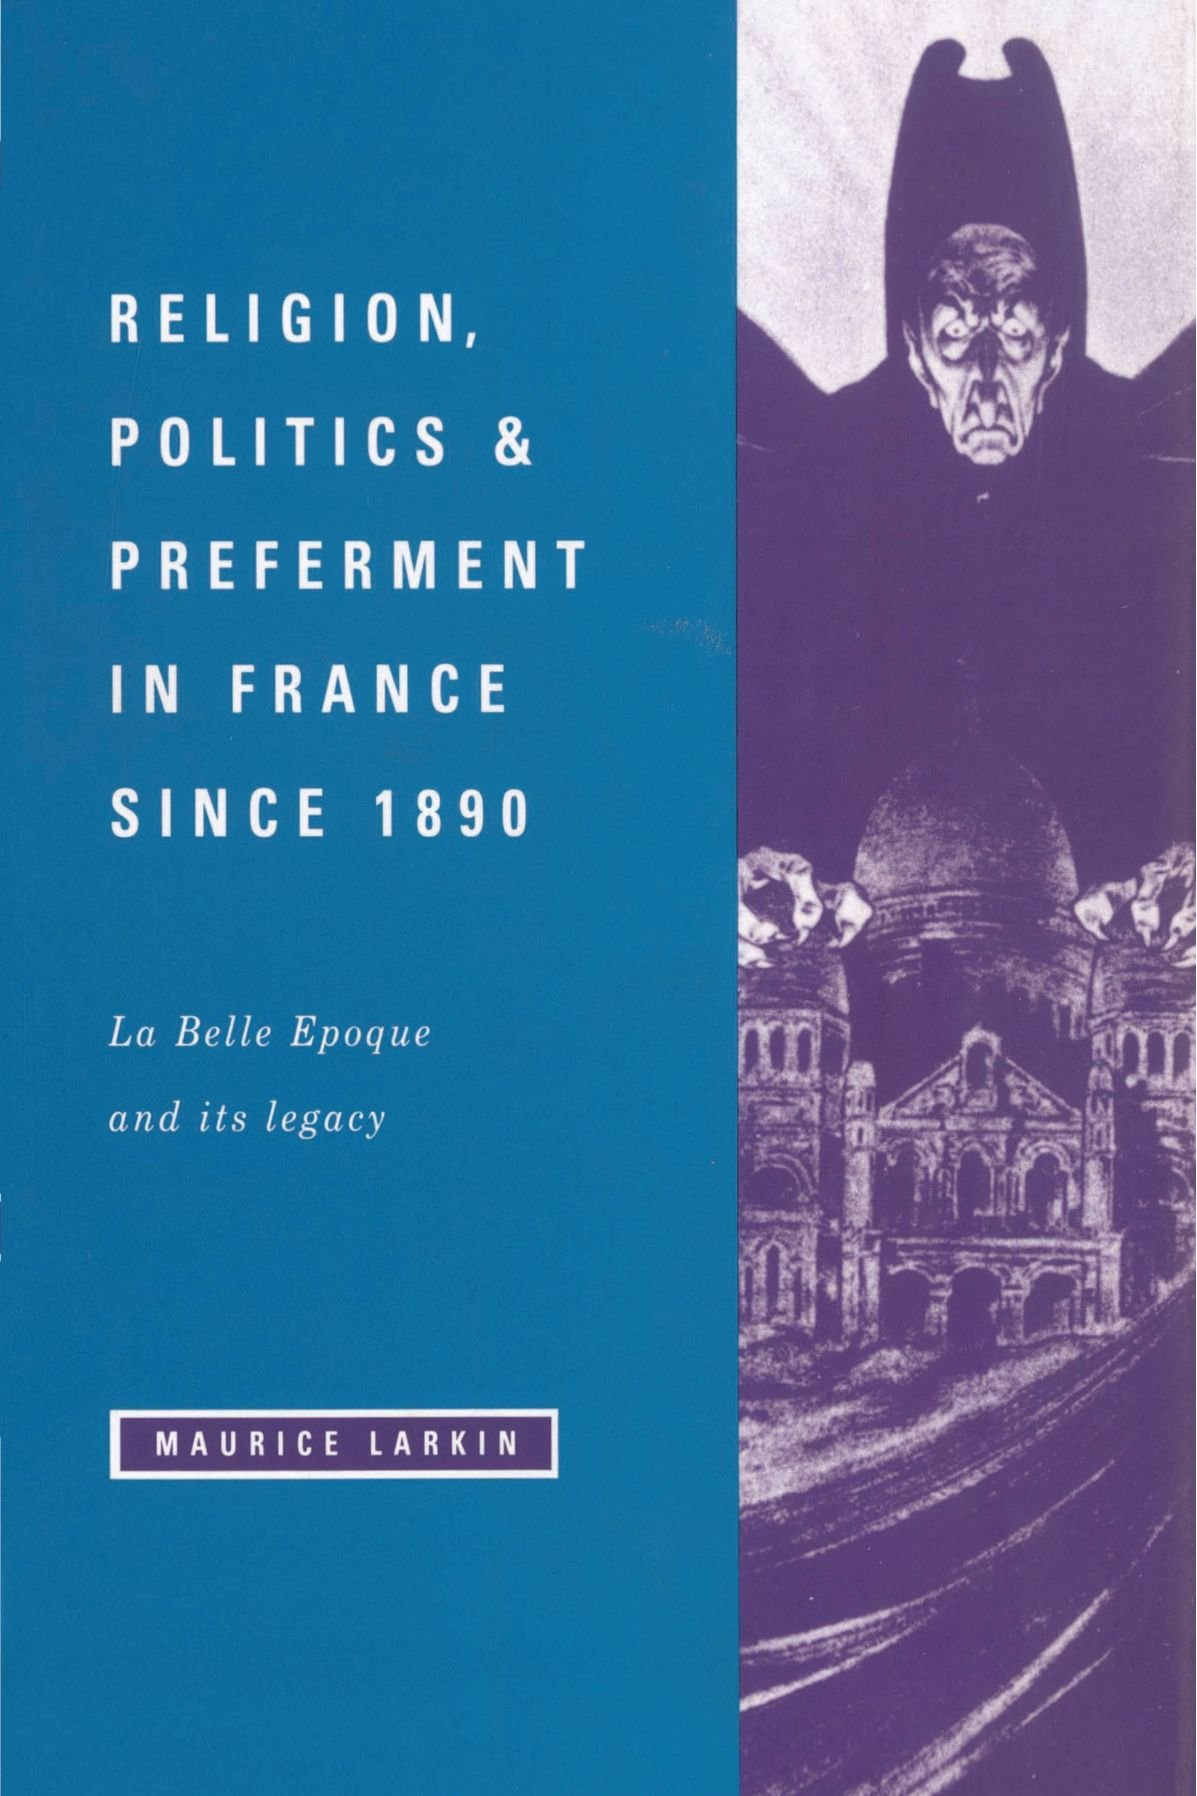 Download Religion, Politics and Preferment in France since 1890: La Belle Epoque and its Legacy (The Wiles Lectures) PDF